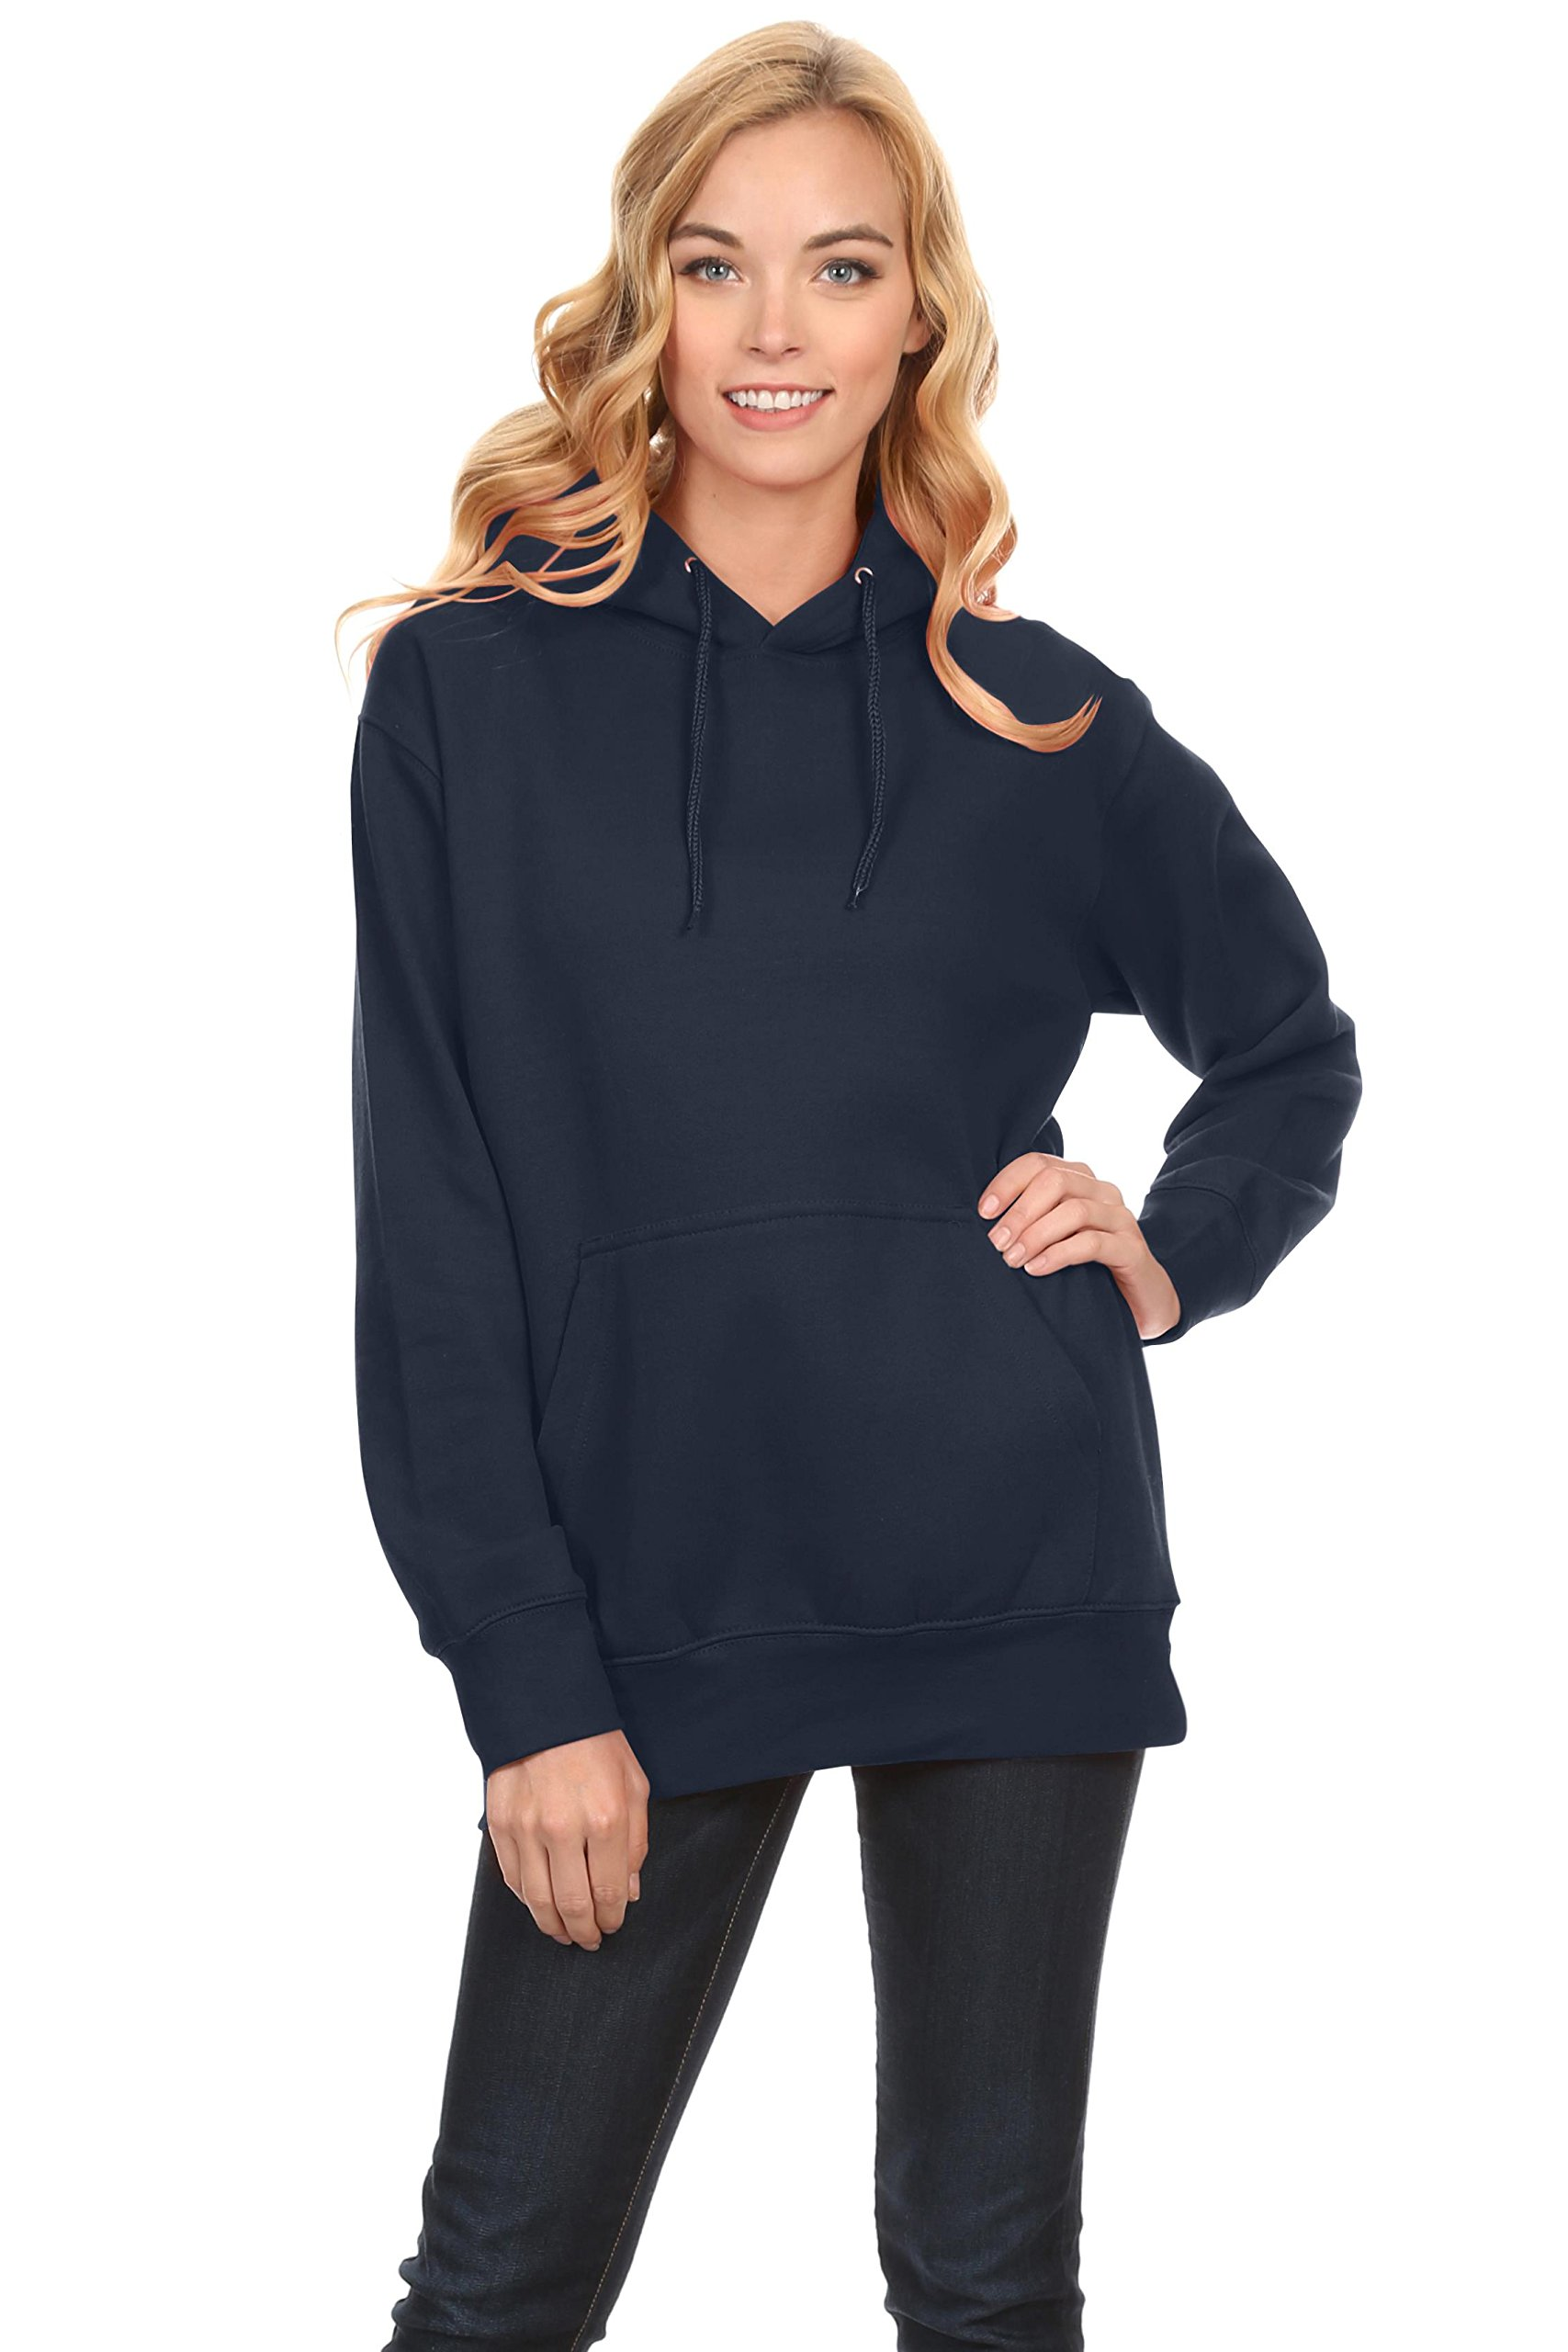 KNIGHT Navy Hoodie Long Sleeve Navy Sweatshirts Pullovers Navy Sweaters for Women Navy XX Large